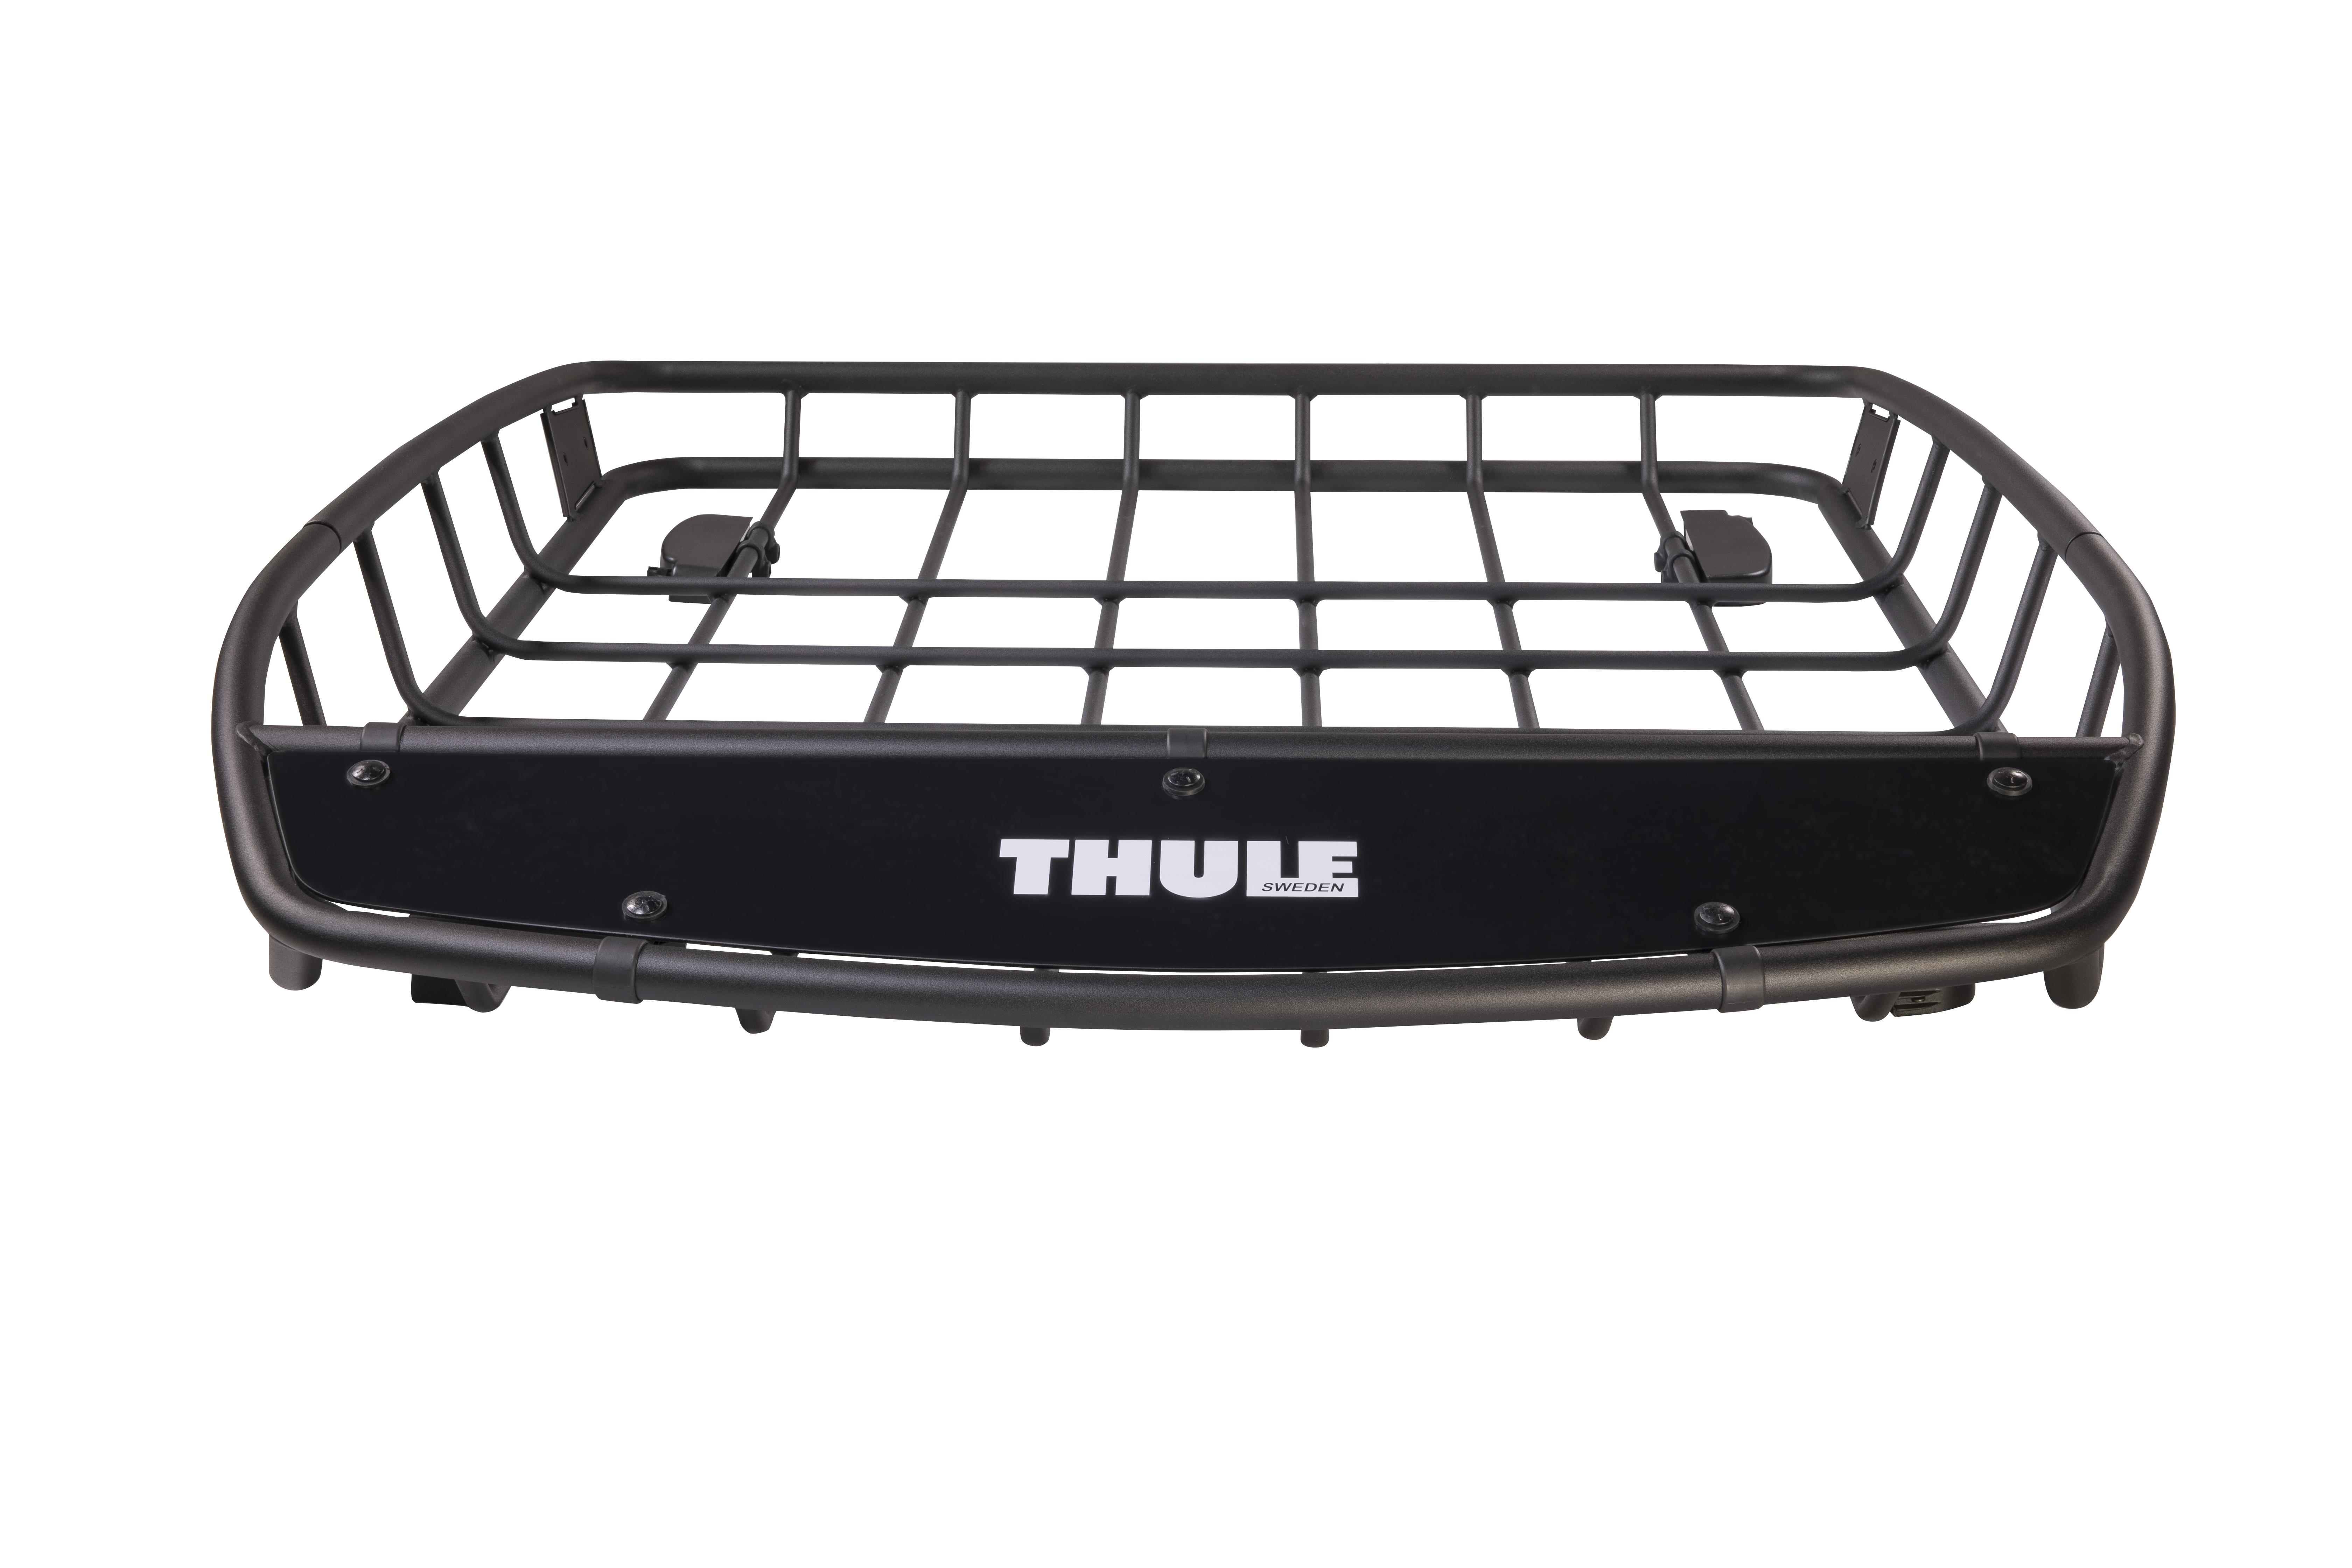 adsp volkswagen thule roof basket attachment jim ellis vw kennesaw ga